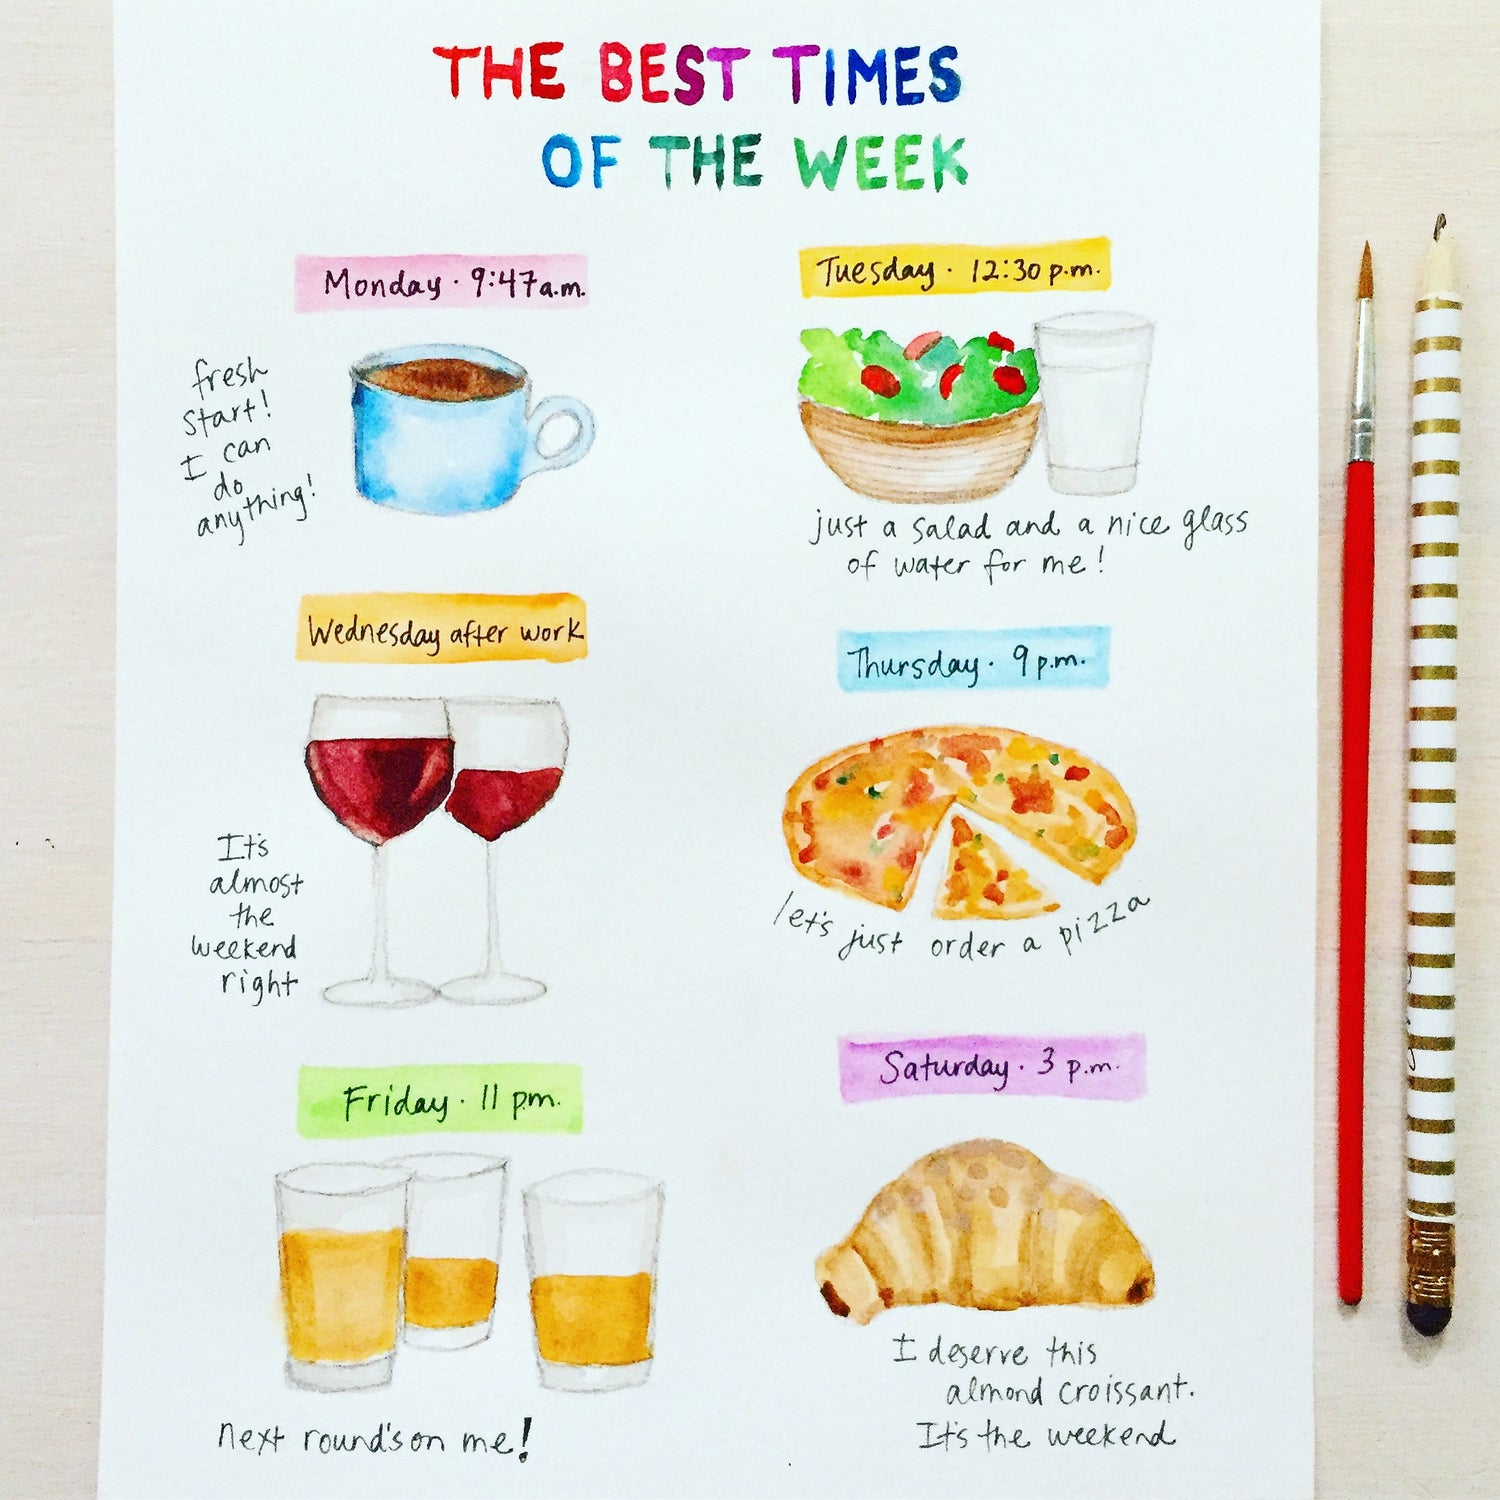 Image of The Best Times of the Week